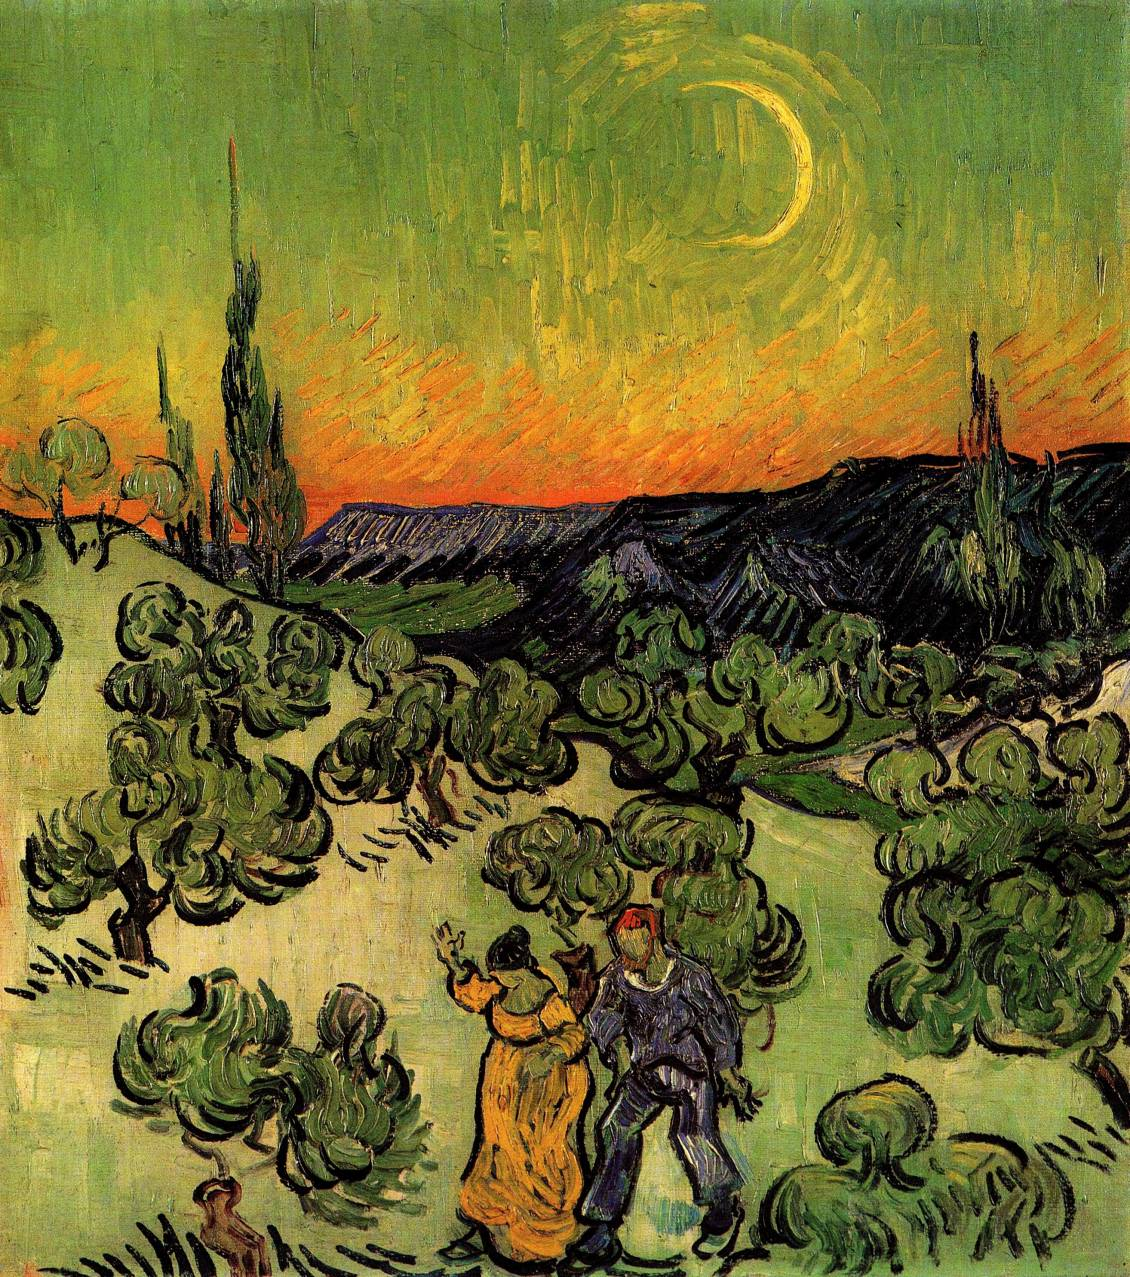 Vincent van Gogh, Landscape with couple walking and crescent moon, 1890  Courtesy Museu de Arte, São Paulo Brazilië